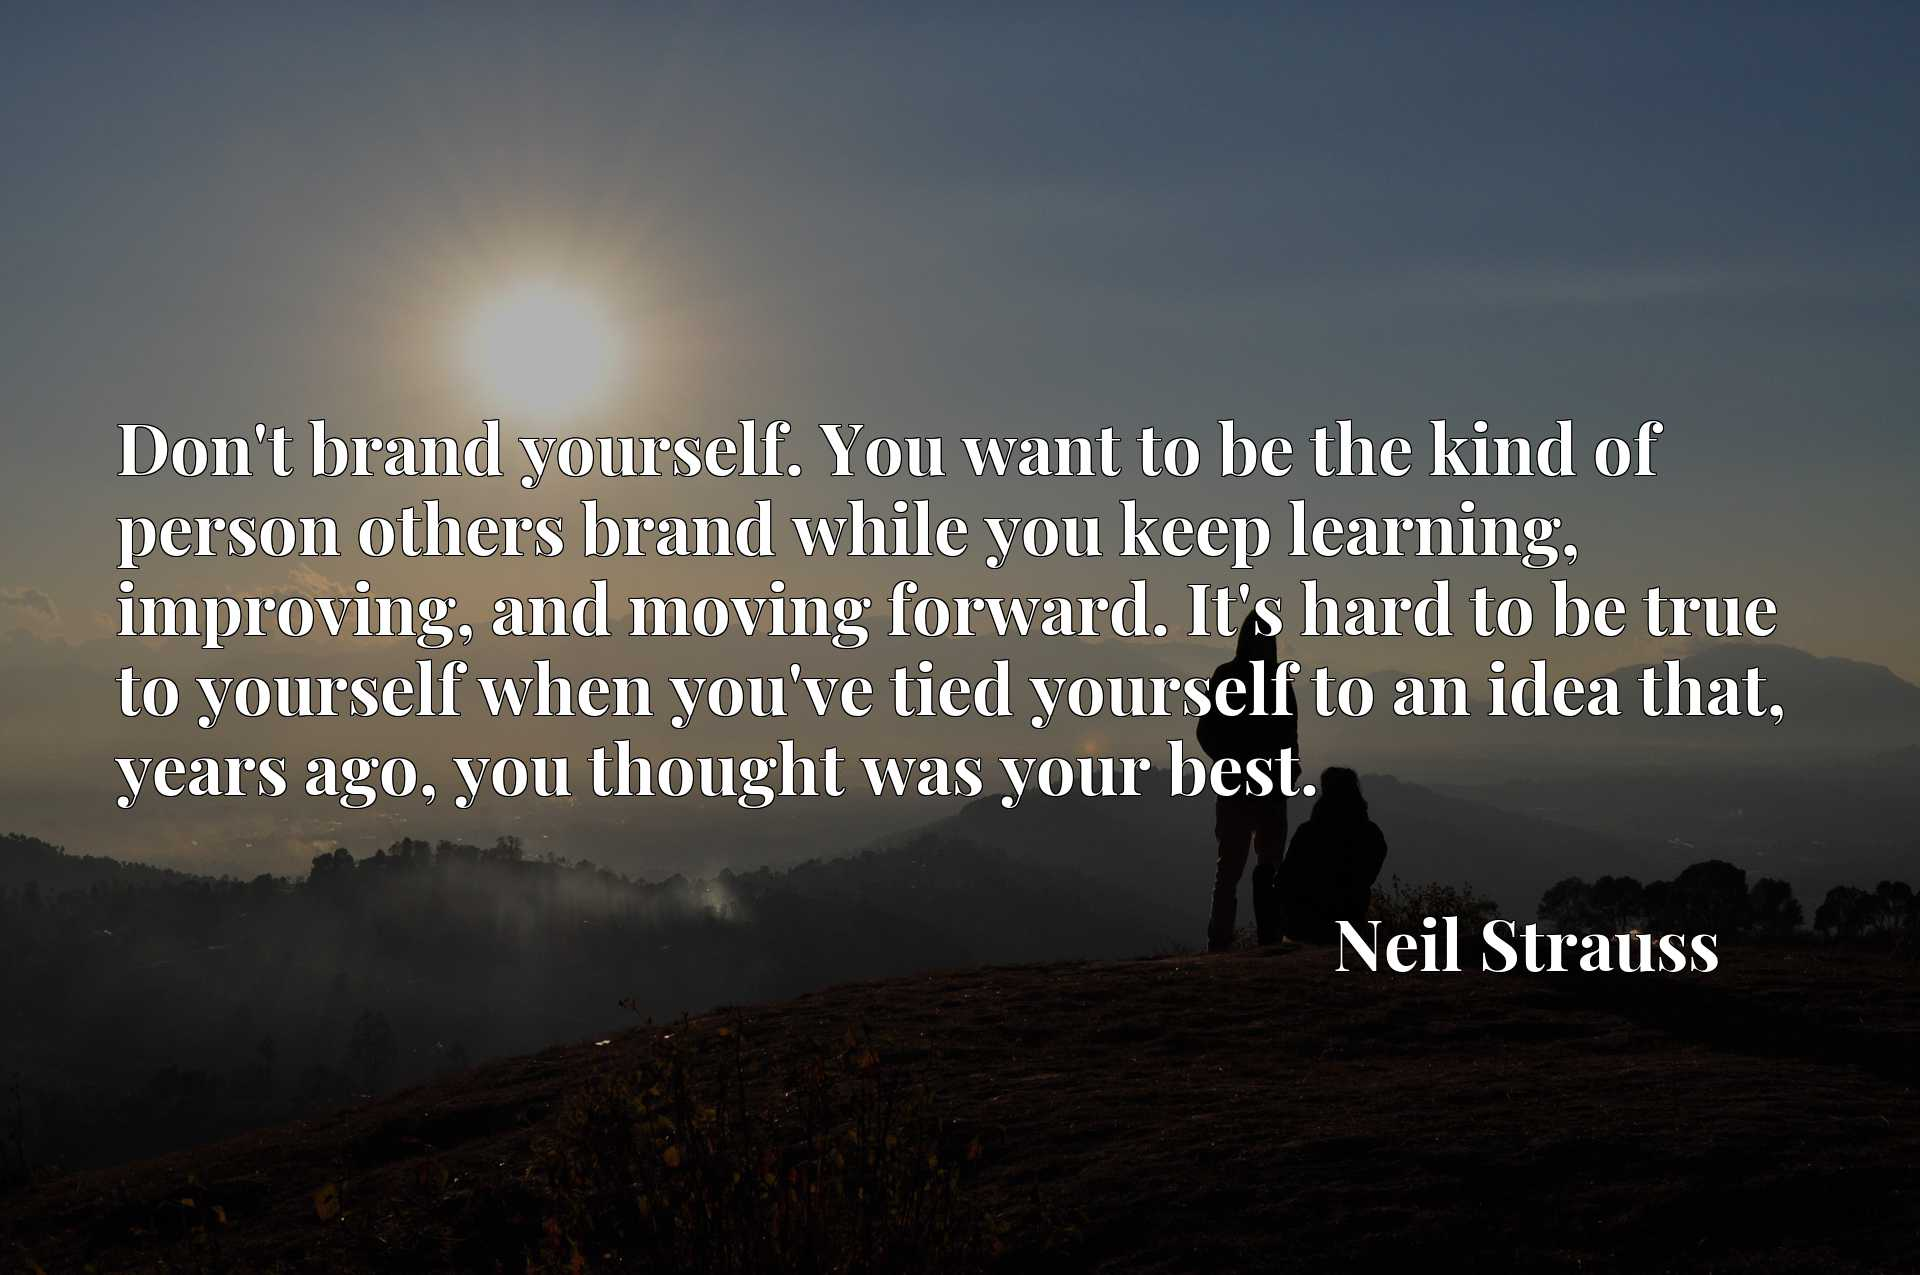 Don't brand yourself. You want to be the kind of person others brand while you keep learning, improving, and moving forward. It's hard to be true to yourself when you've tied yourself to an idea that, years ago, you thought was your best.